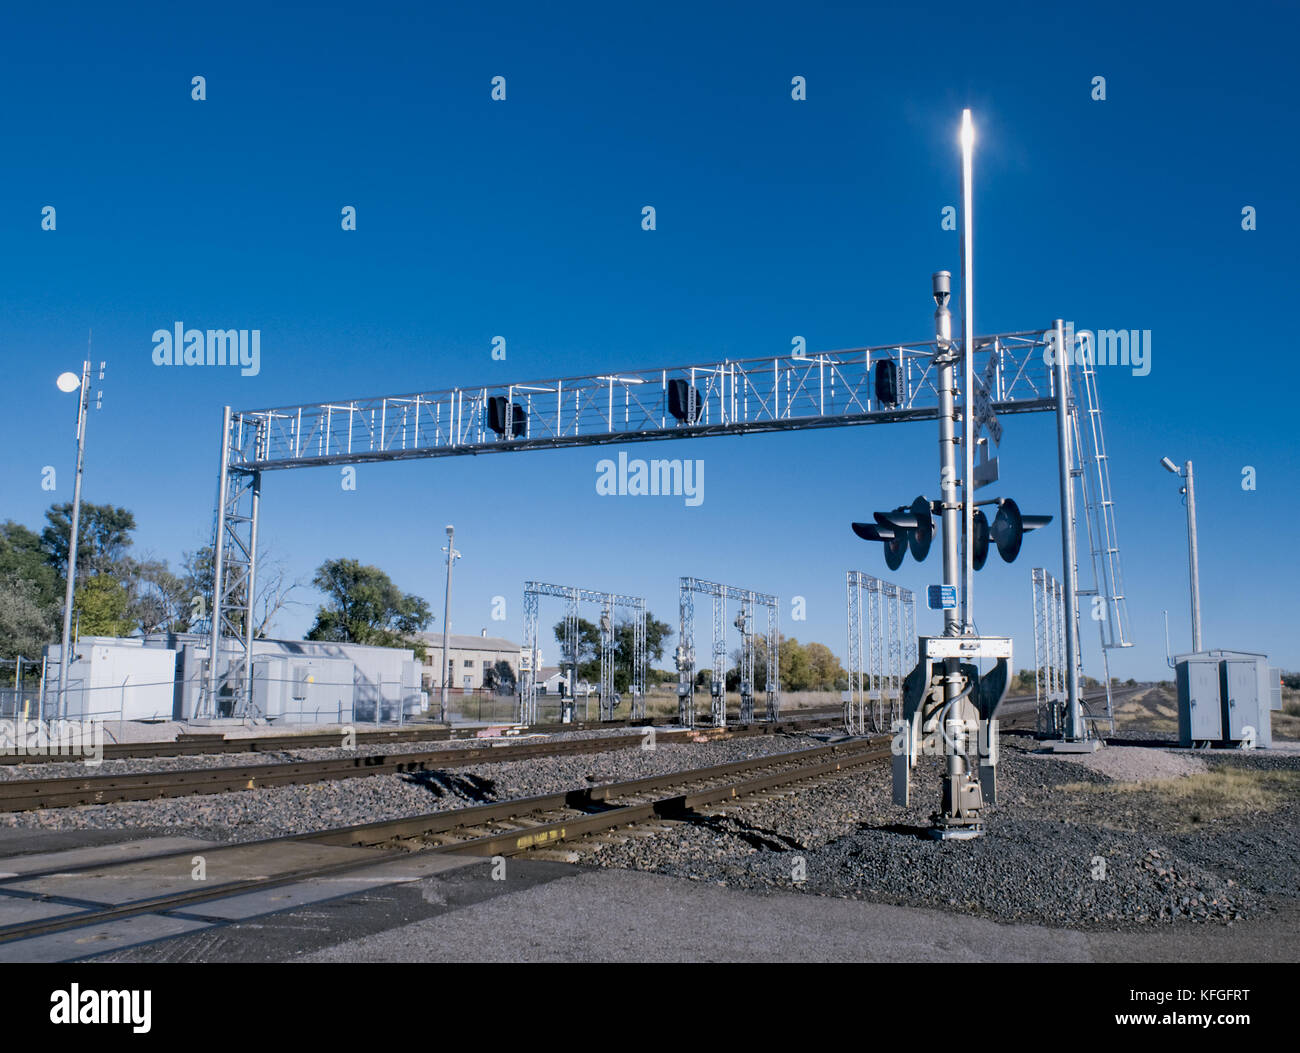 railroads crossing dangers essay Railroad crossing essay railroad crossings are dangerous intersections  between regular roads and the rails that trains ride on avoiding the.